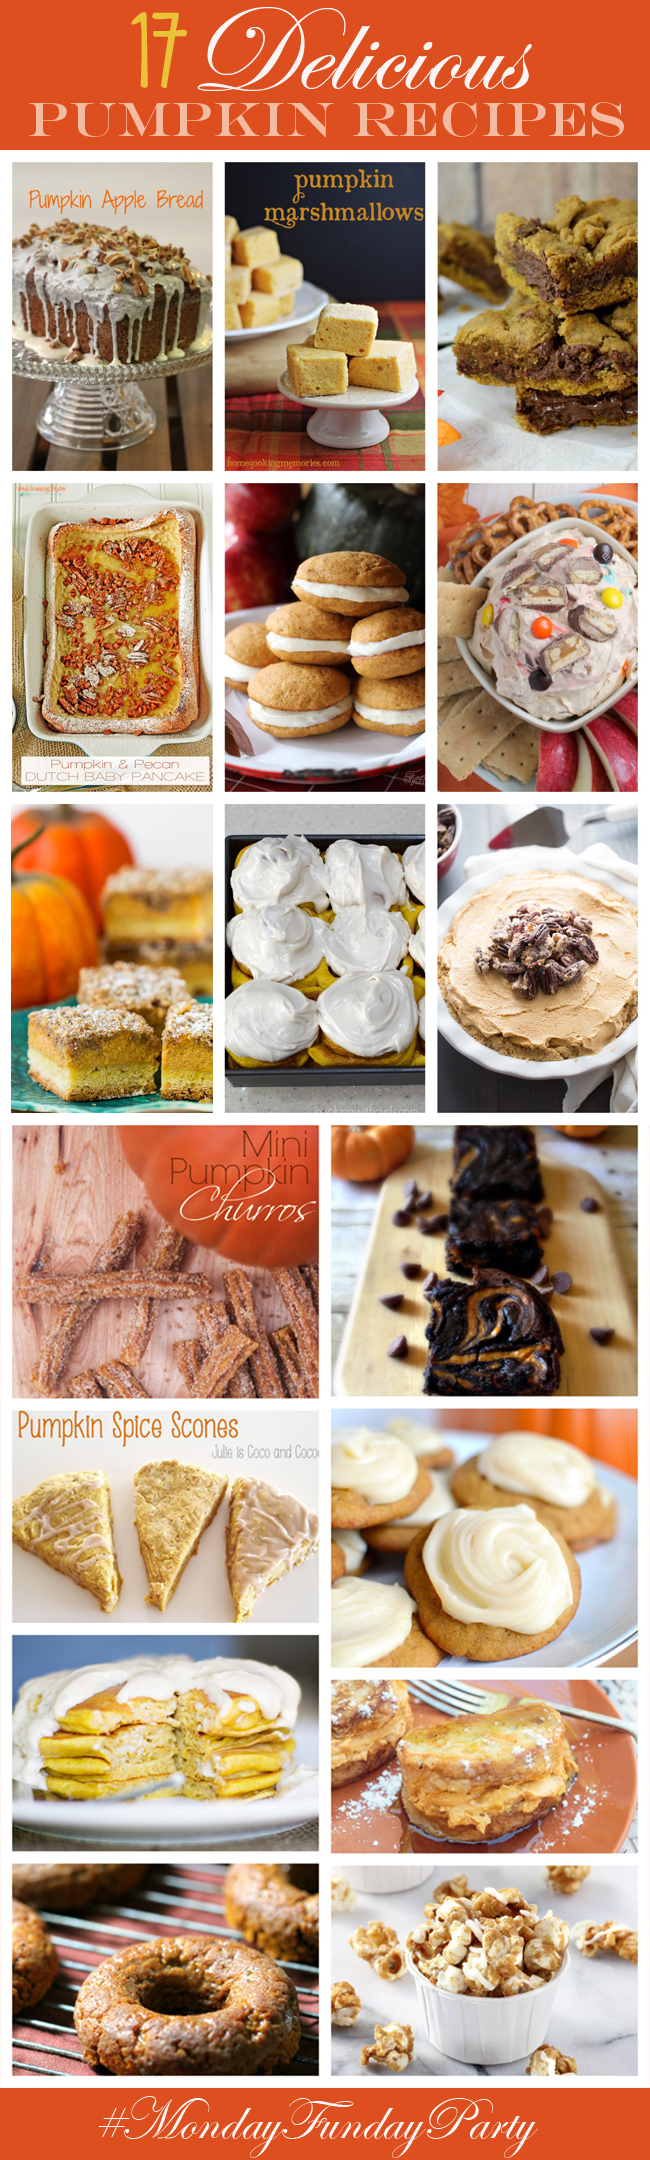 17 Delicious Pumpkin Recipe Ideas #MondayFundayParty